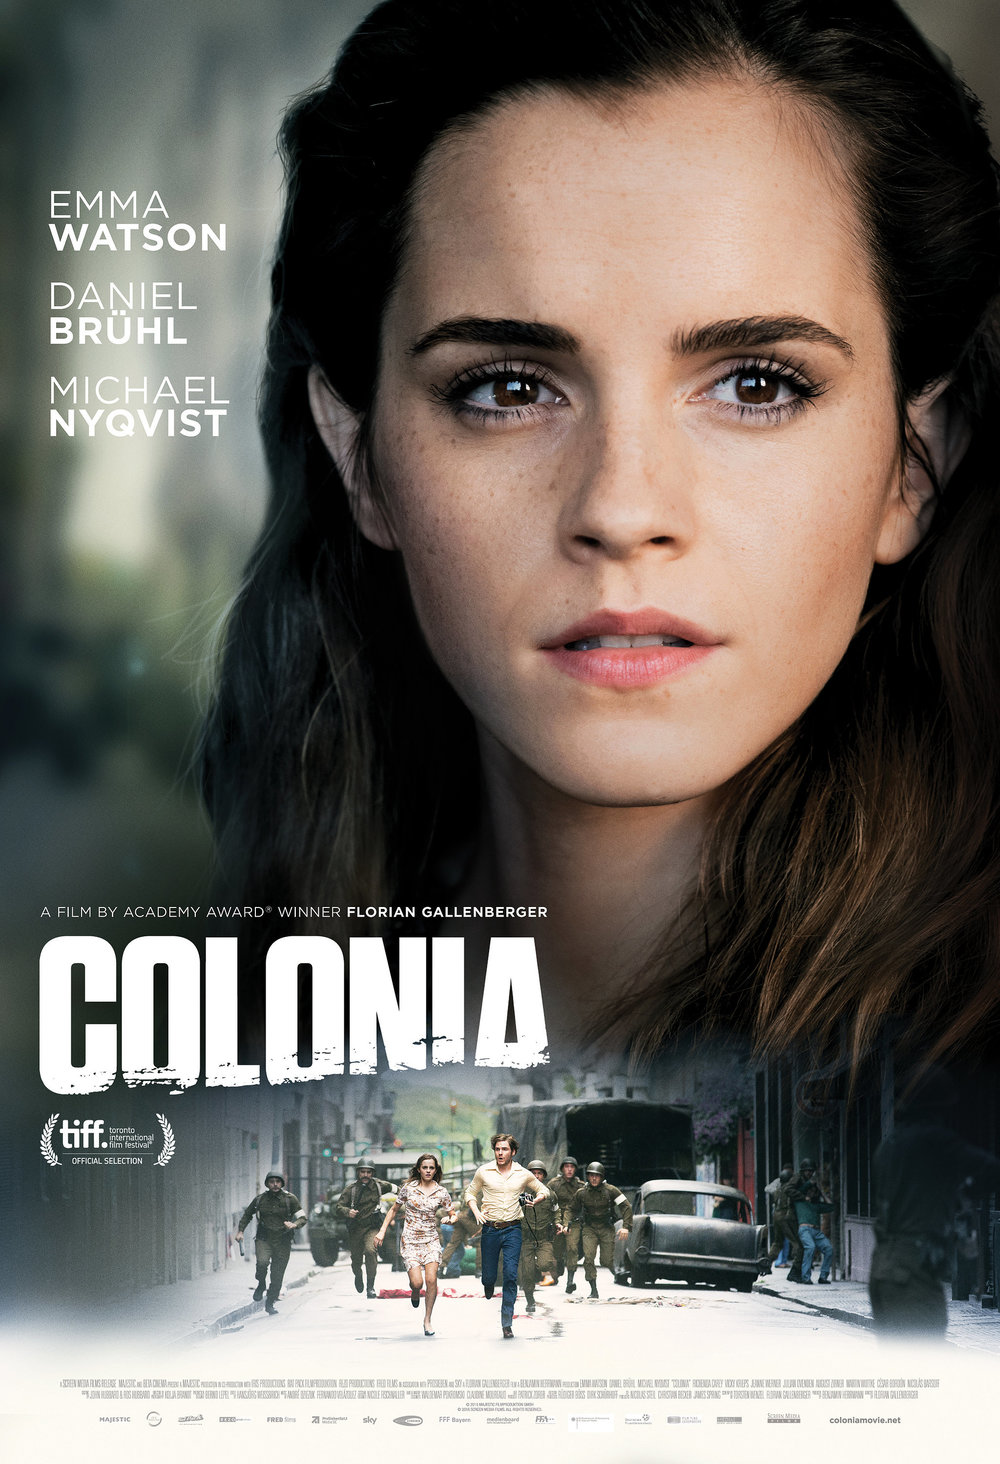 colonia-poster-05.jpg